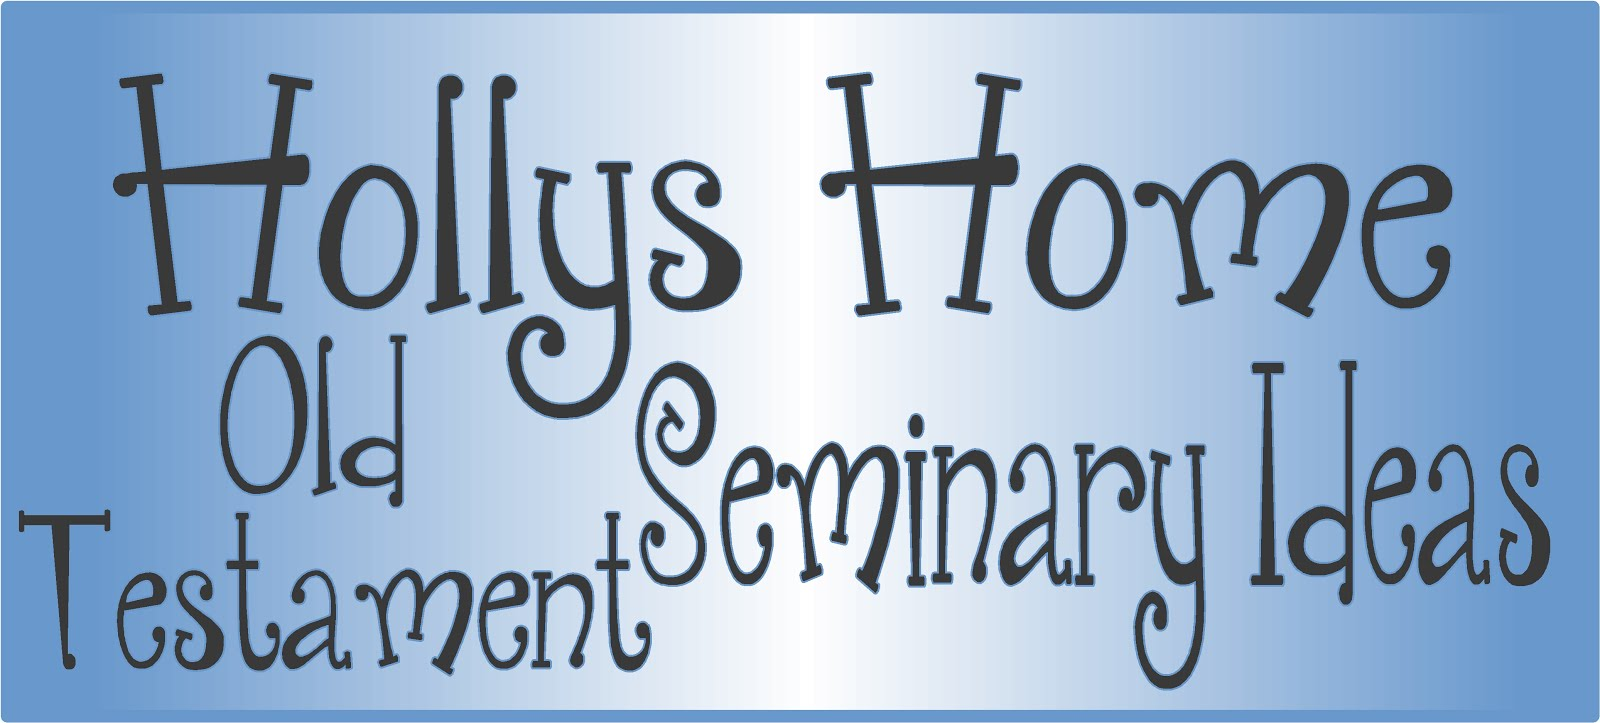 Old Testament Seminary Ideas